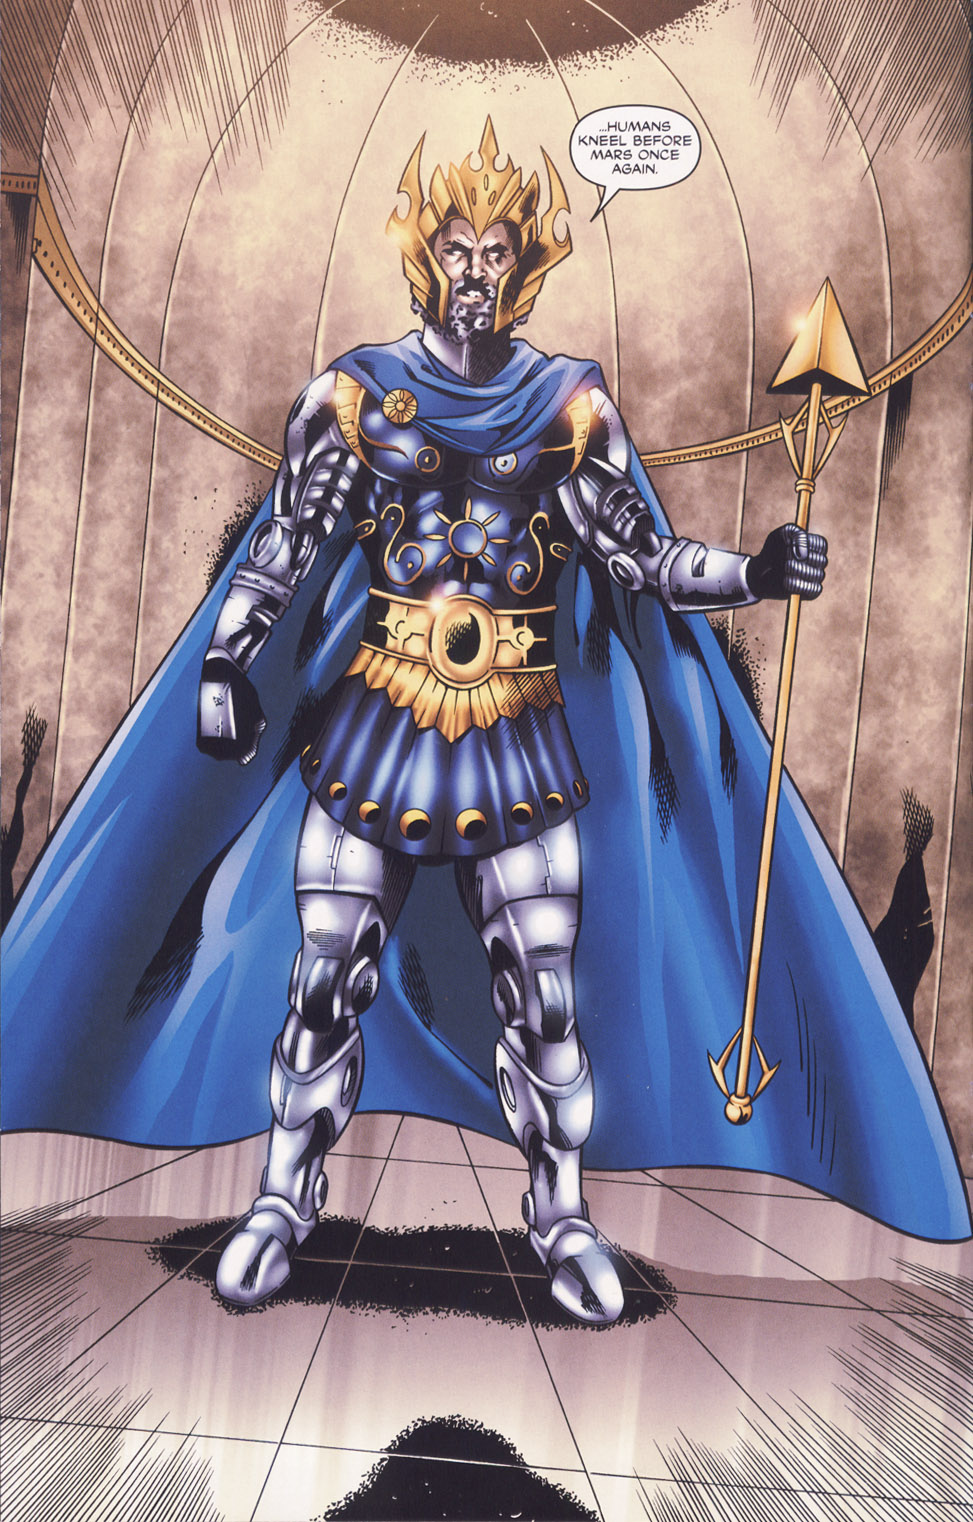 Read online Stargate SG-1: Fall of Rome comic -  Issue #2 - 10